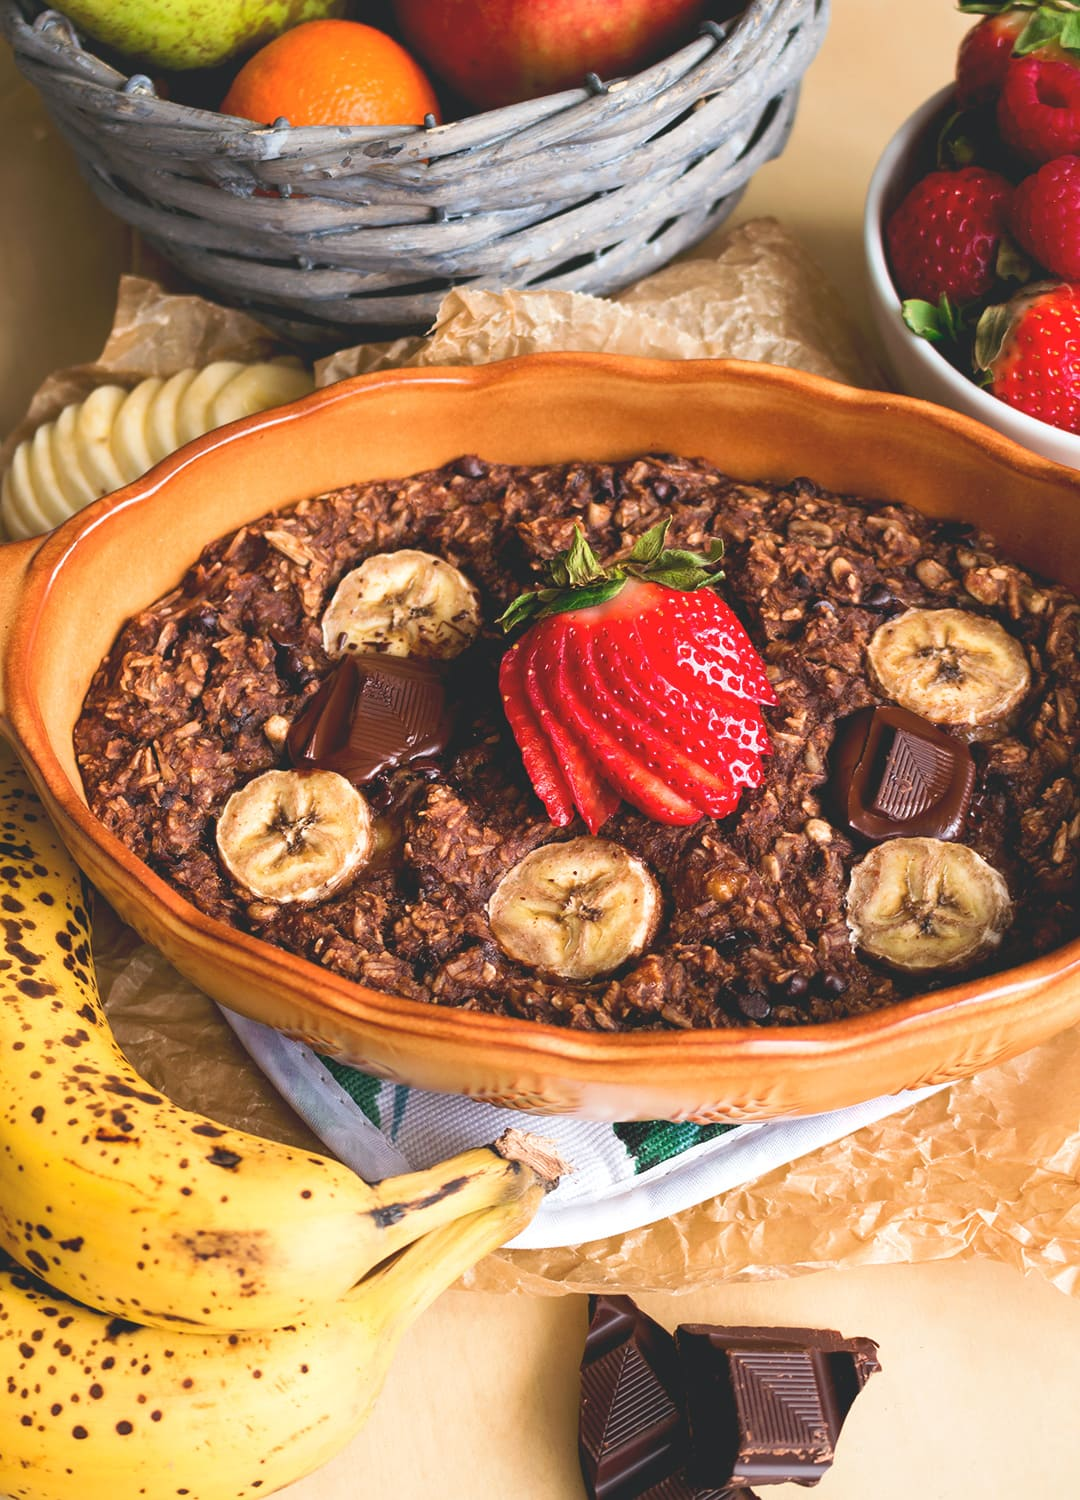 Chocolate Maca Baked Oatmeal - delicious nutirious baked oatmeal recipe you'r going to love! Full of superfoods, really tasty, and easy to make! | thehealthfulideas.com